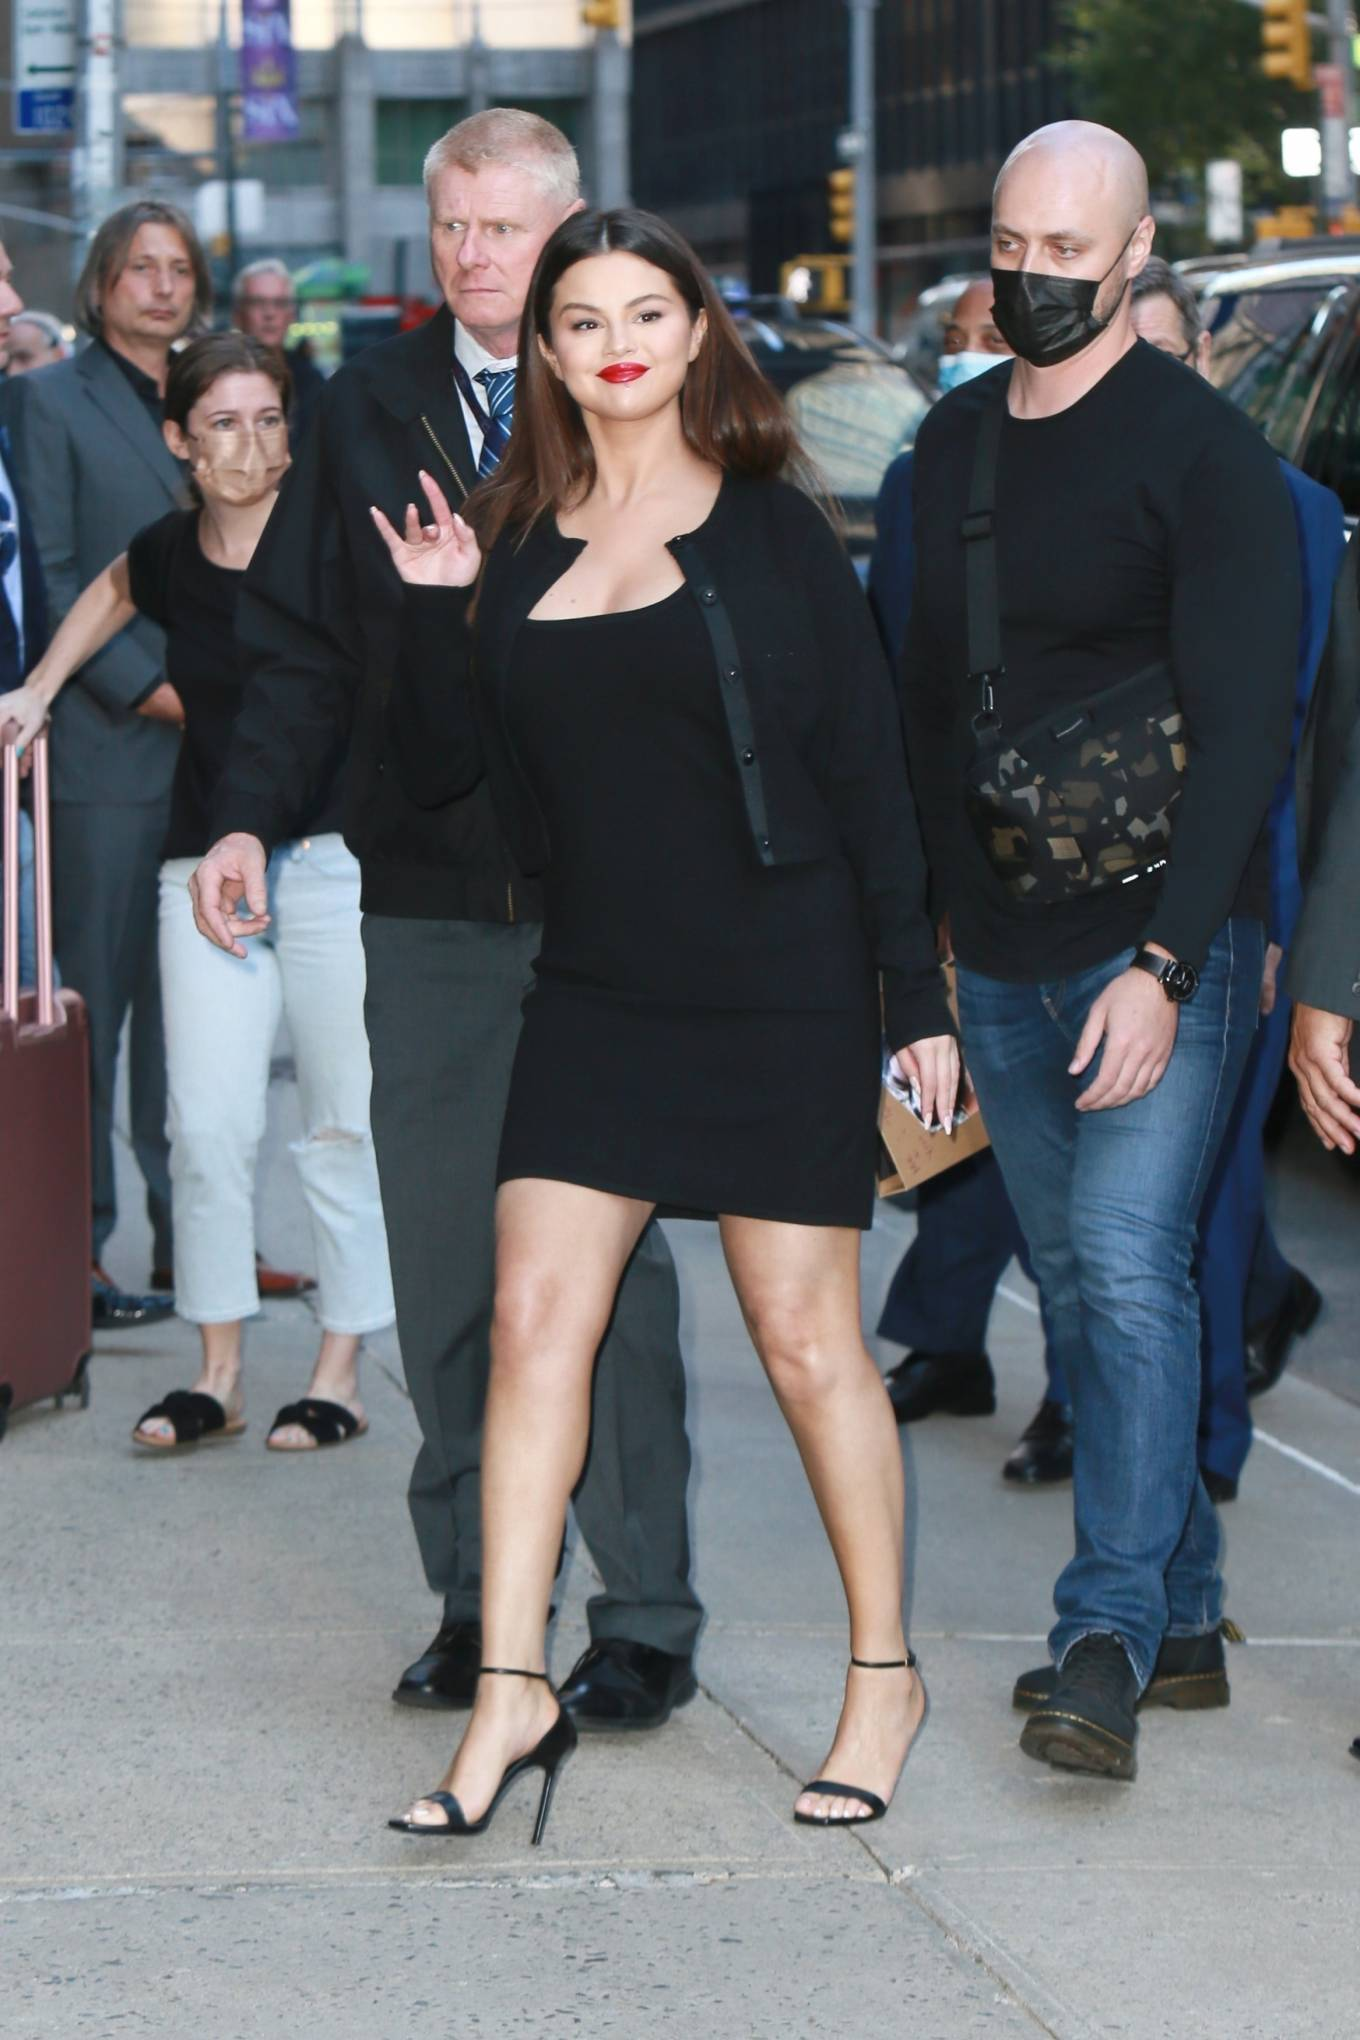 Selena Gomez donning a figure hugging black dress Victor Glemaud while out and about in New York